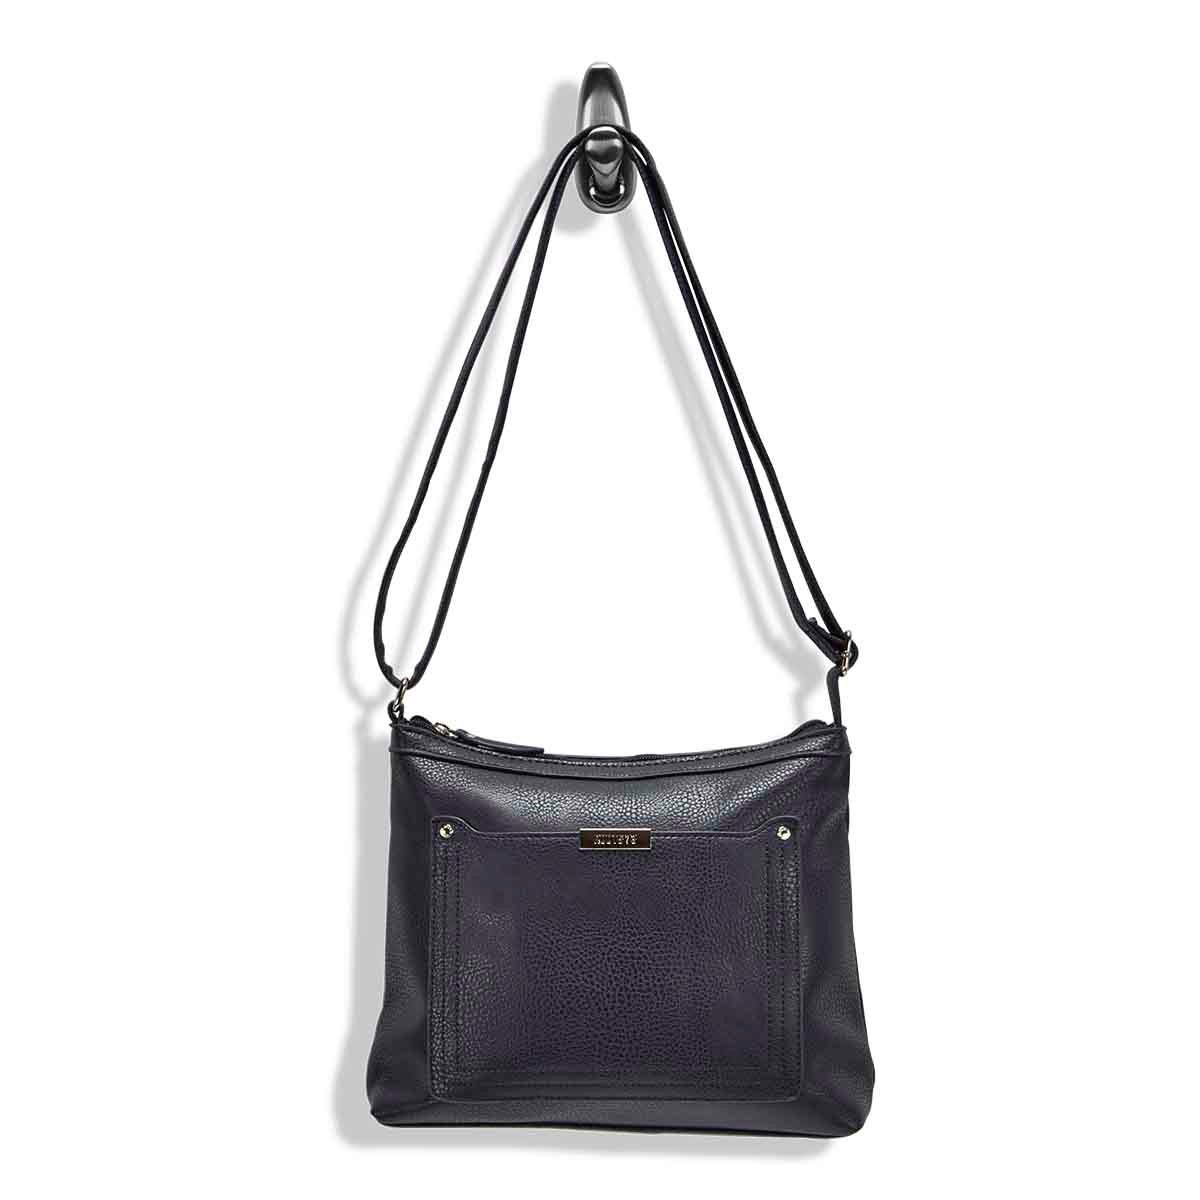 Lds Roots73 nvy stiched pocket crossbody